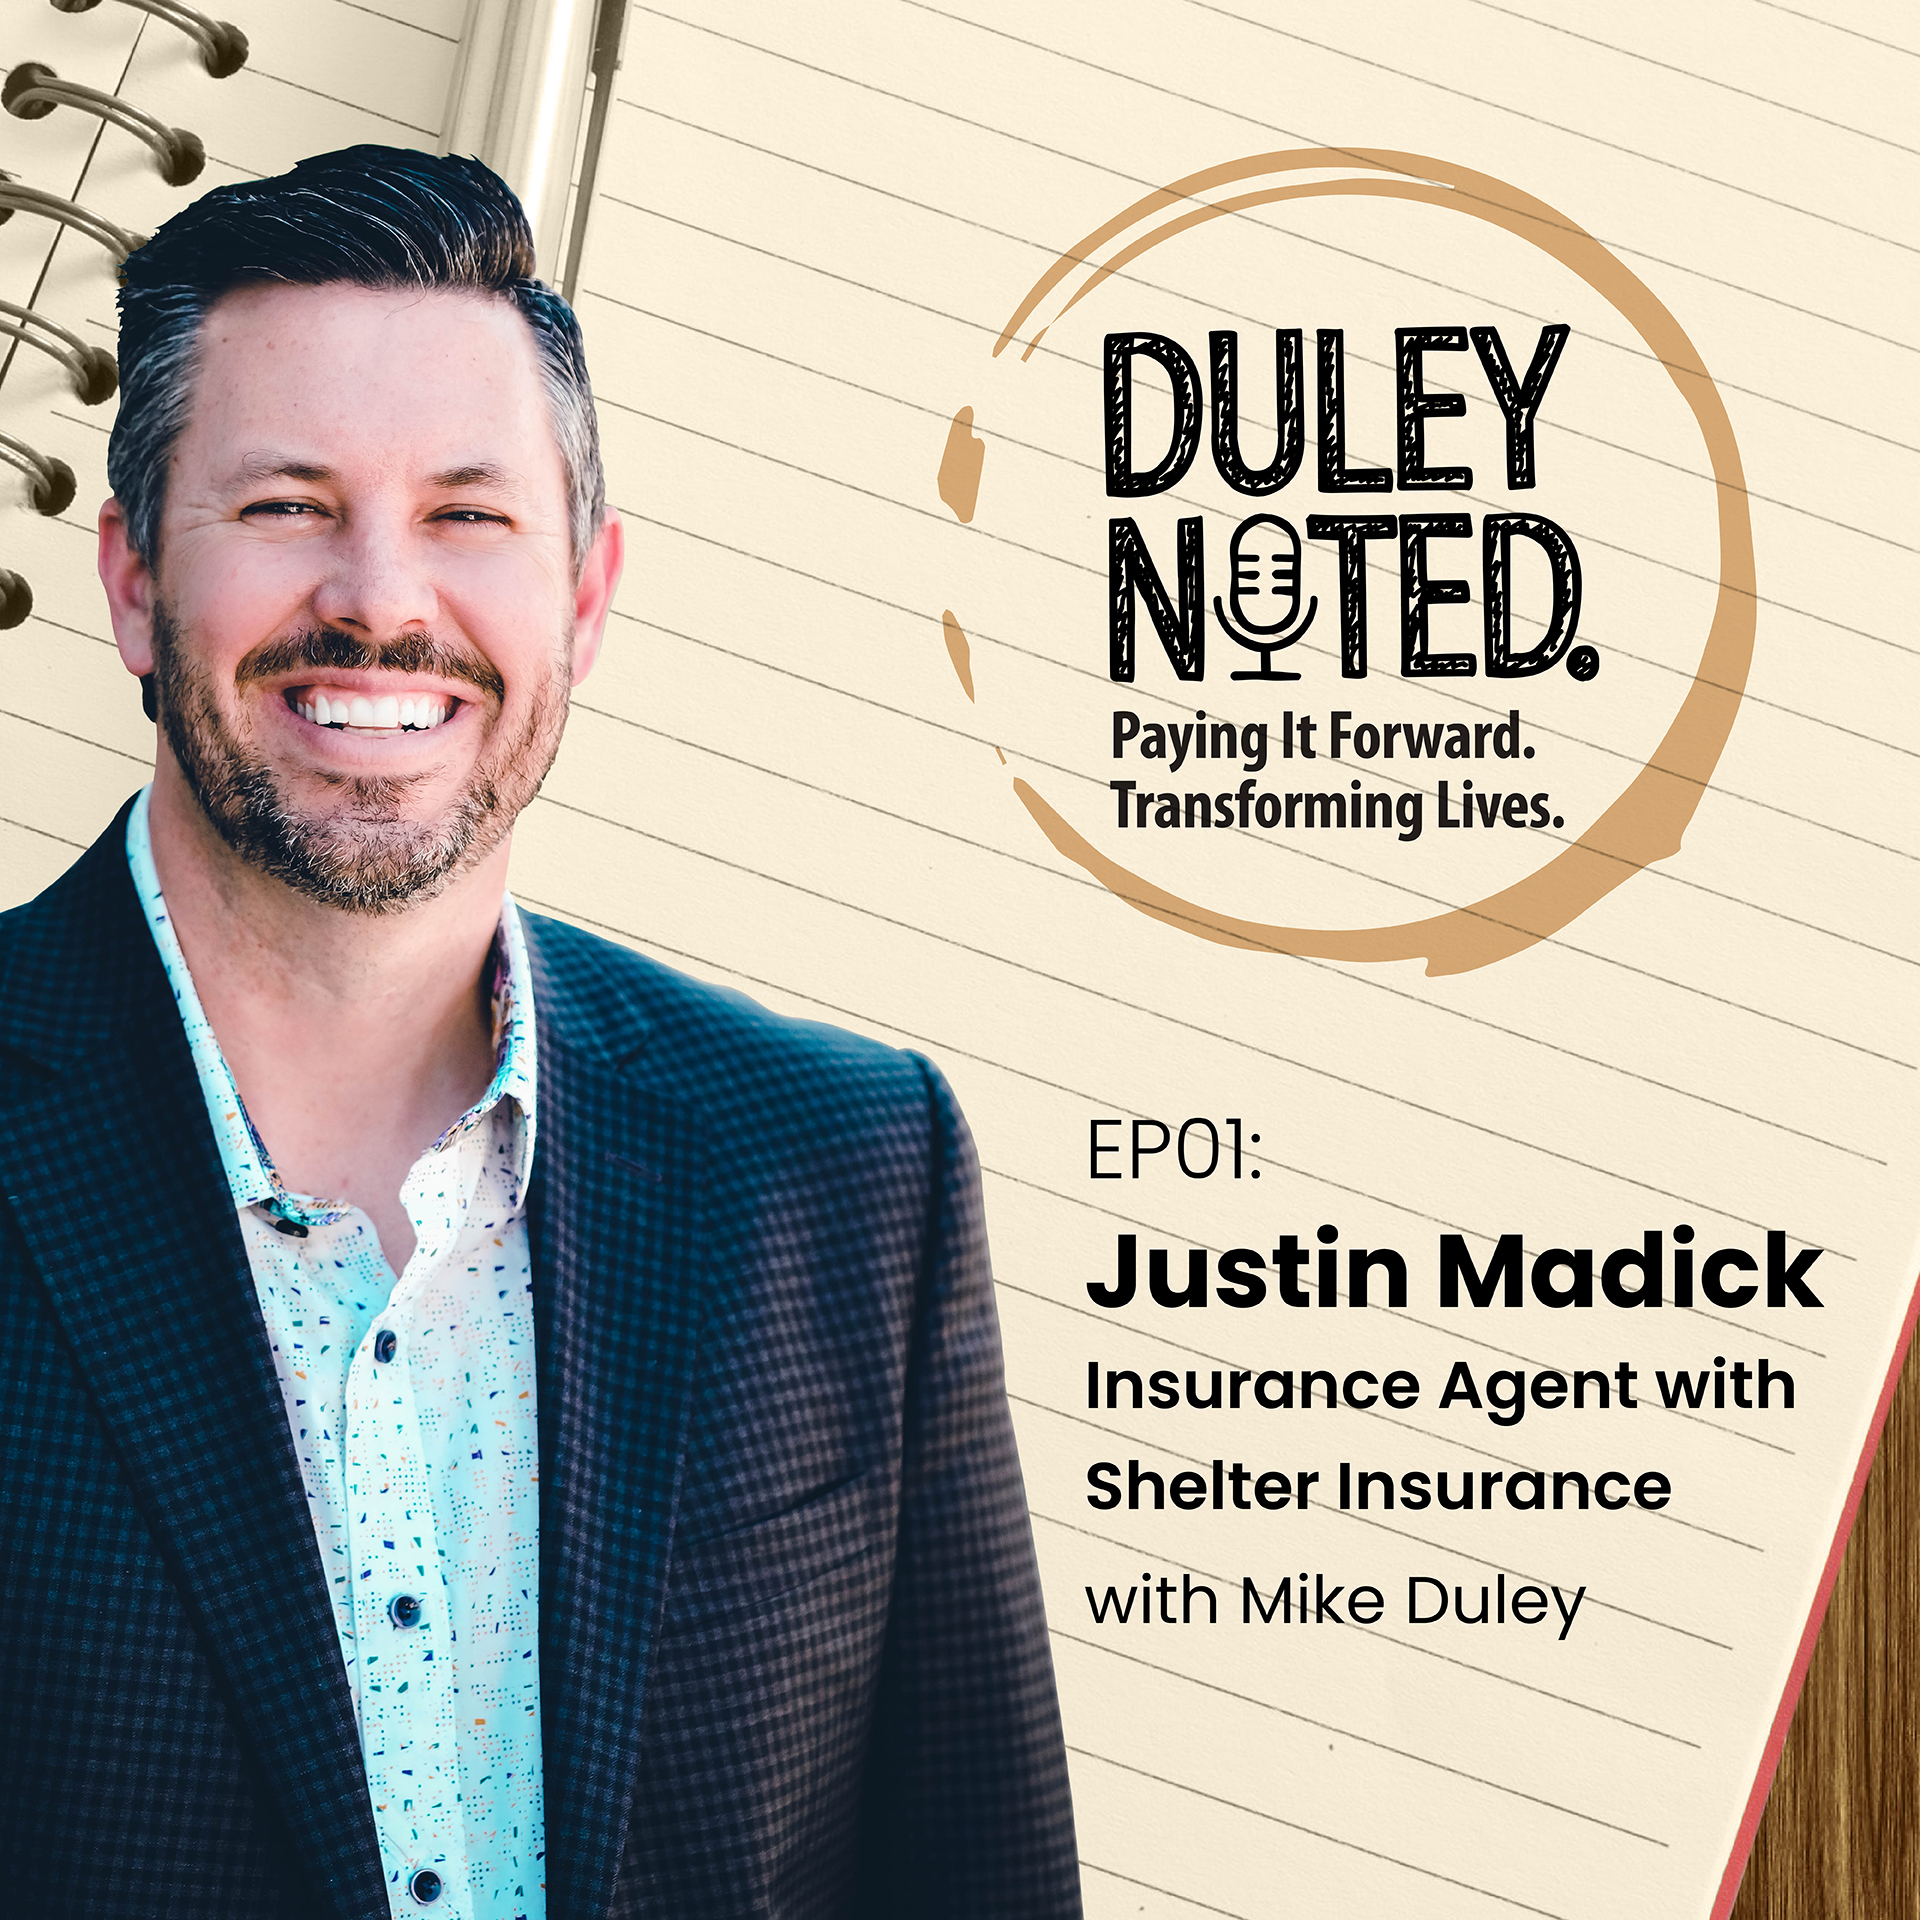 Justin Madick - Insurance Agent with Shelter Insurance